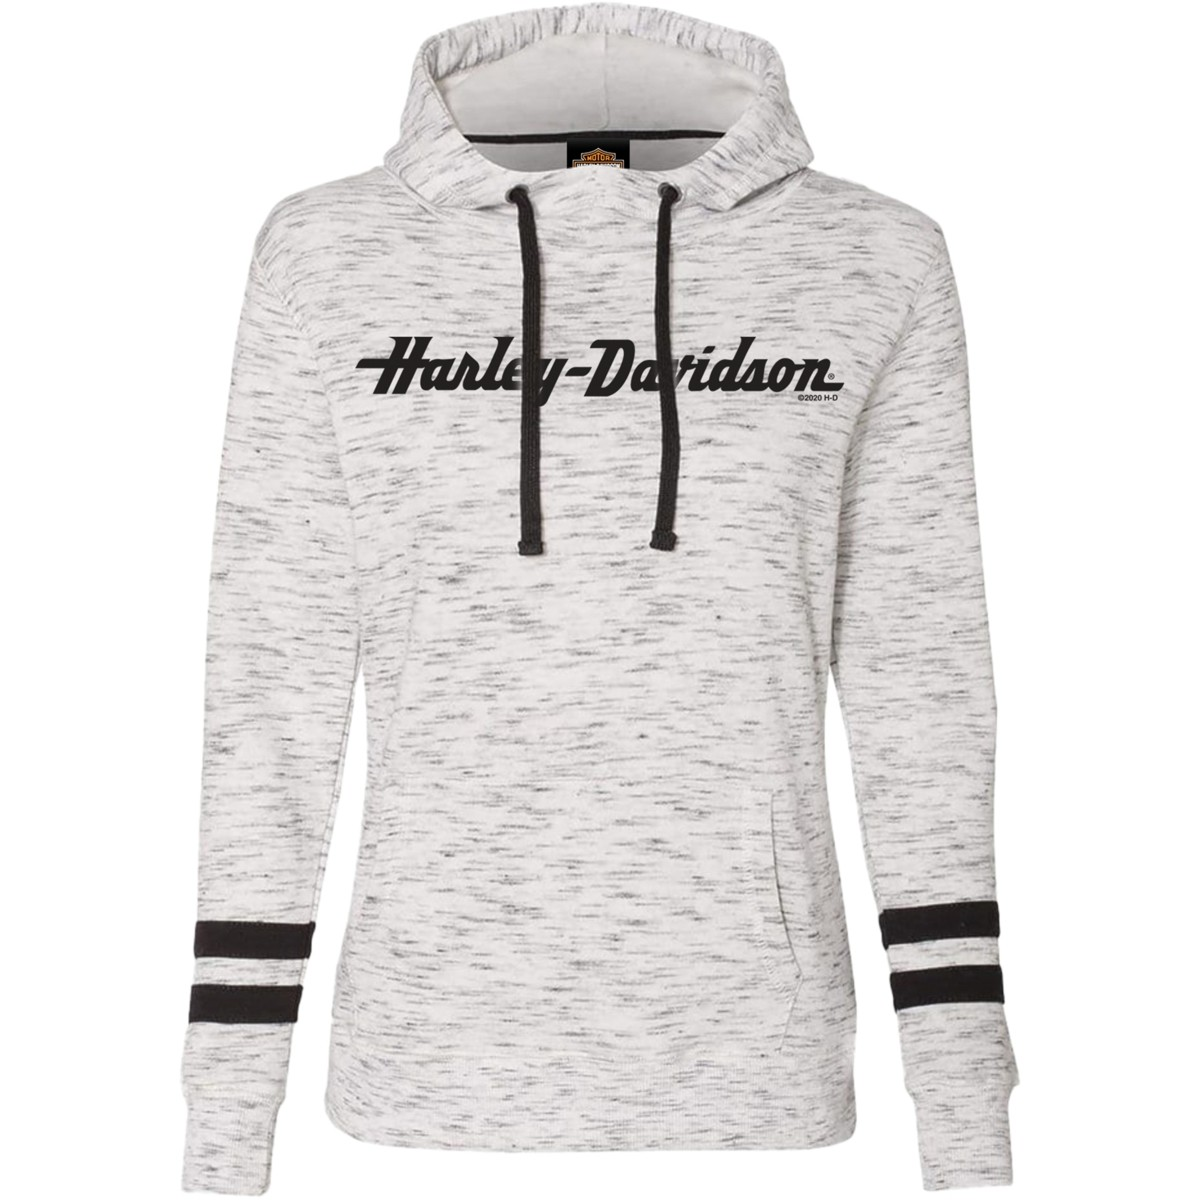 Women's Black & White Graphic Pullover Hooded Sweatshirt - Overseas Tour | H-D Stitch